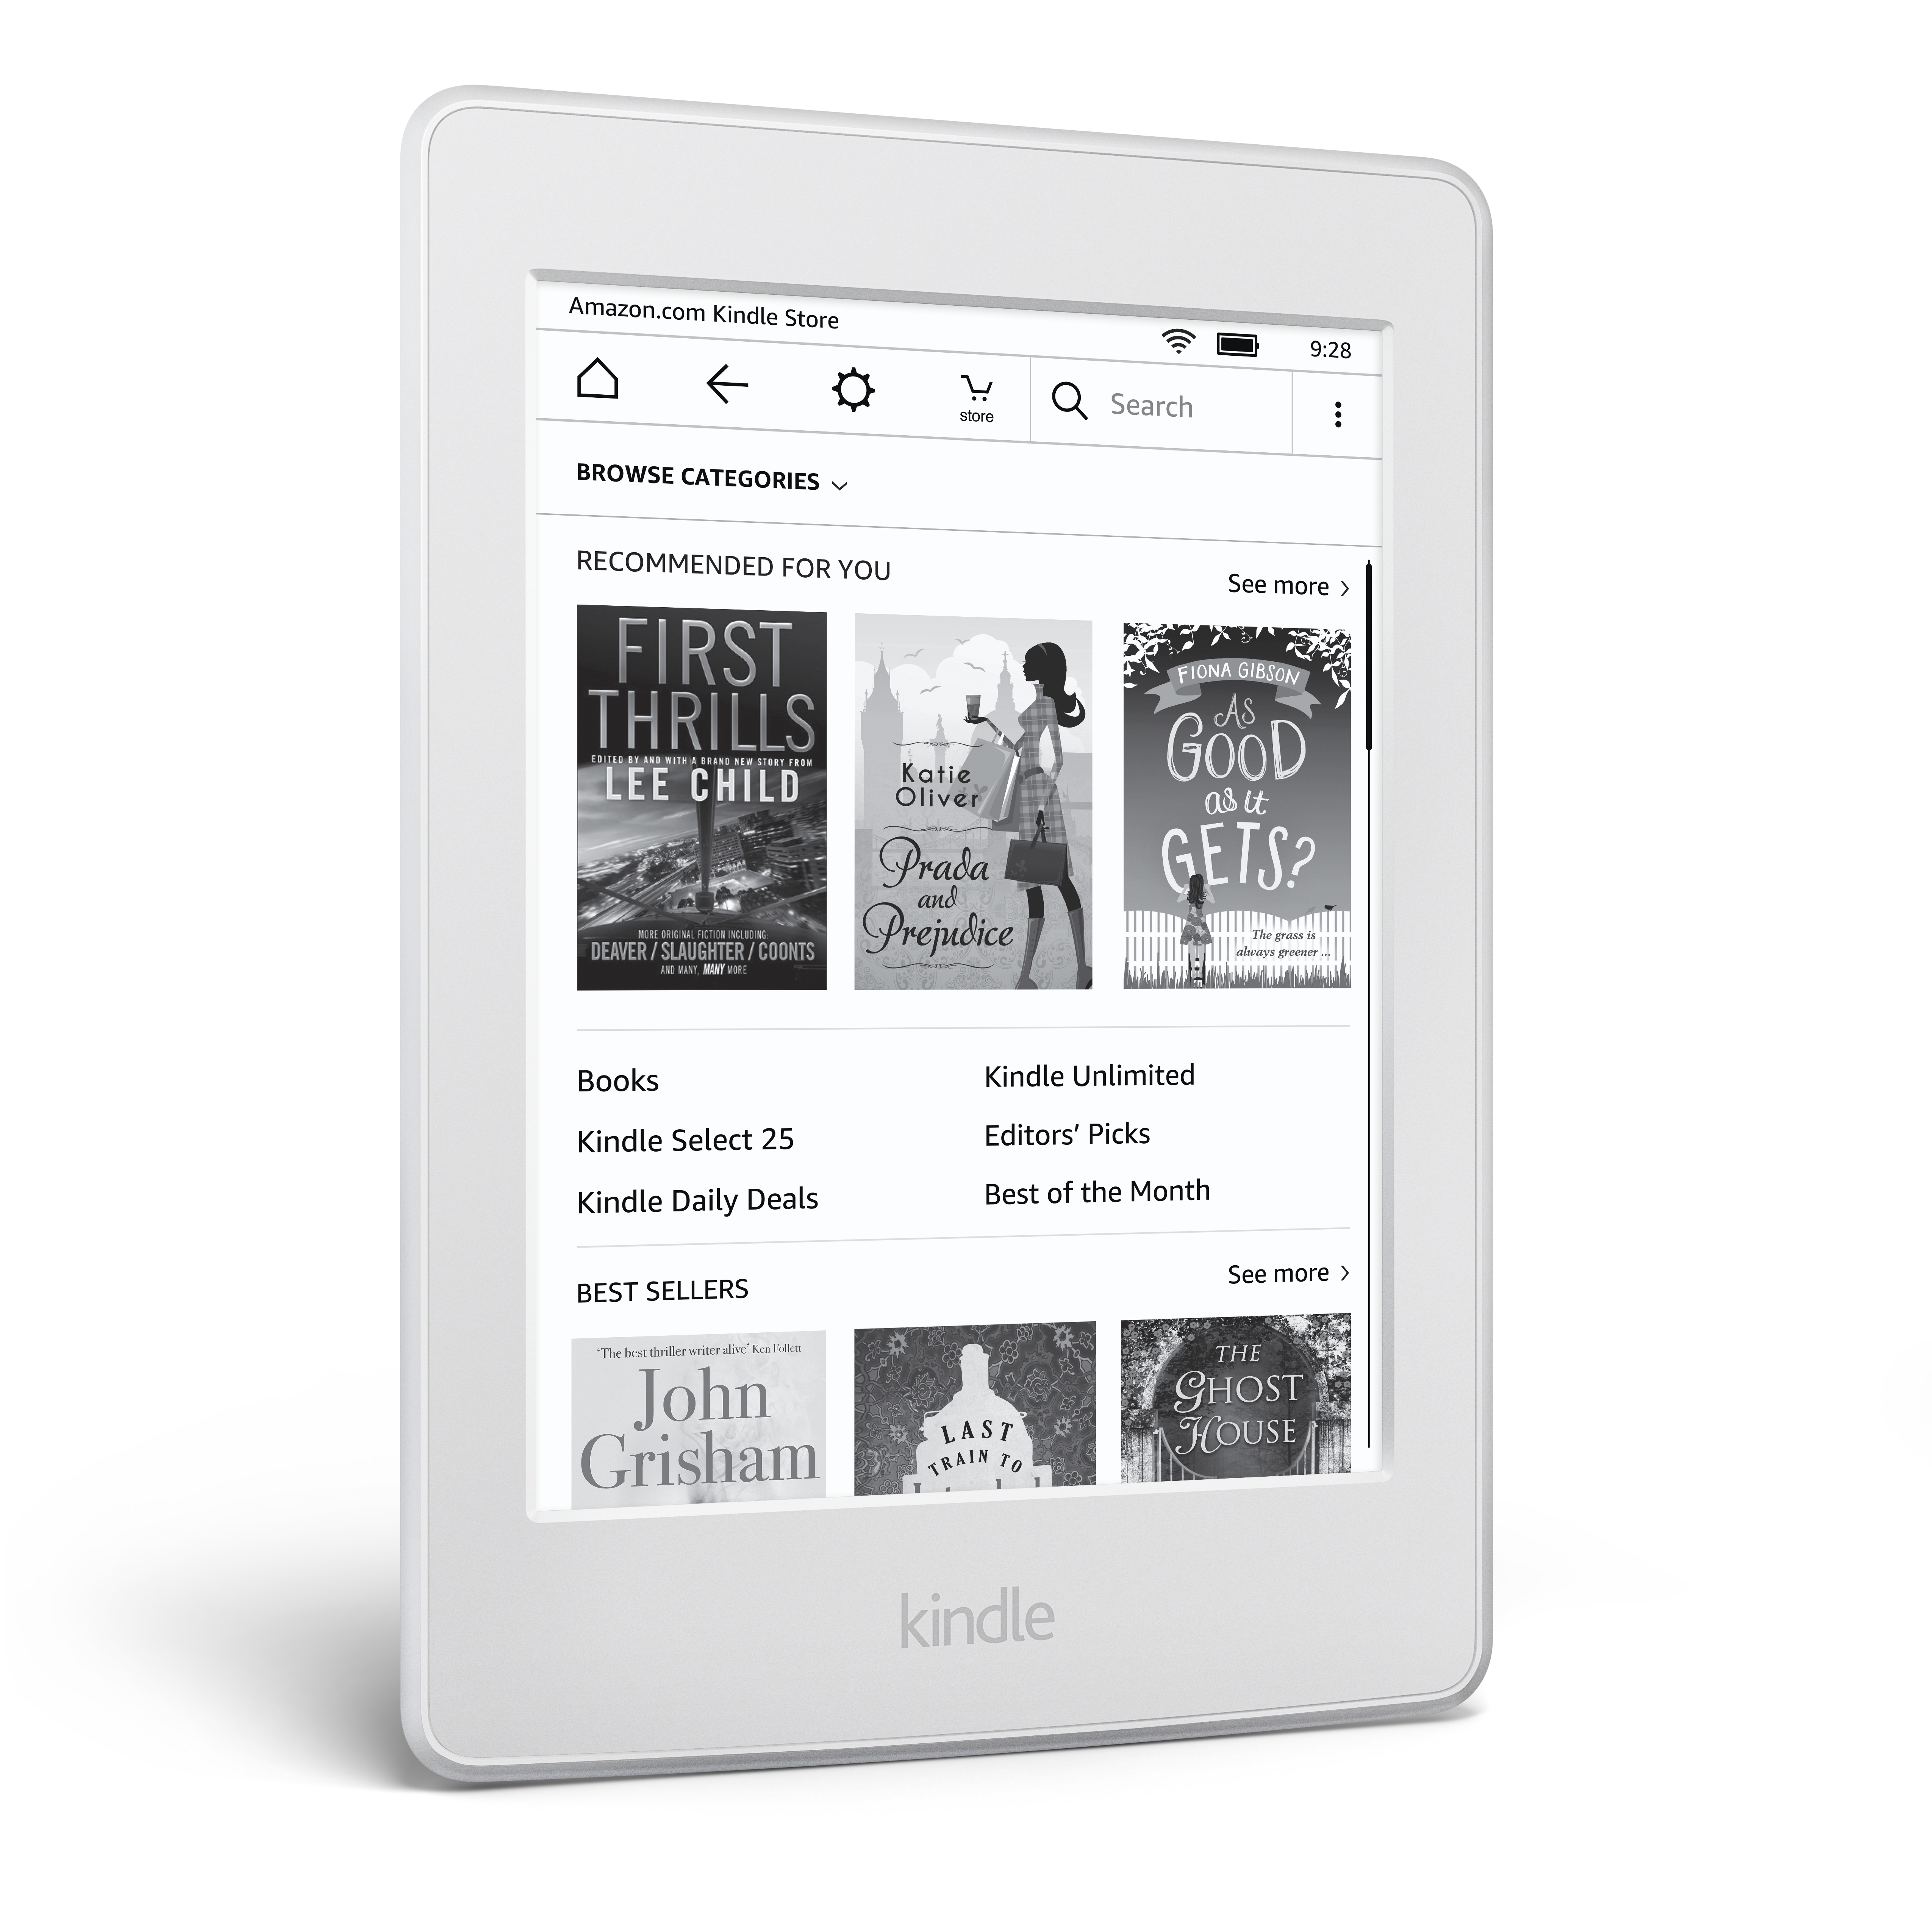 kindle white paper where to buy Buy amazon kindle paperwhite wi-fi e-reader - white at argos thousands of products for same day delivery £395, or fast store collection.